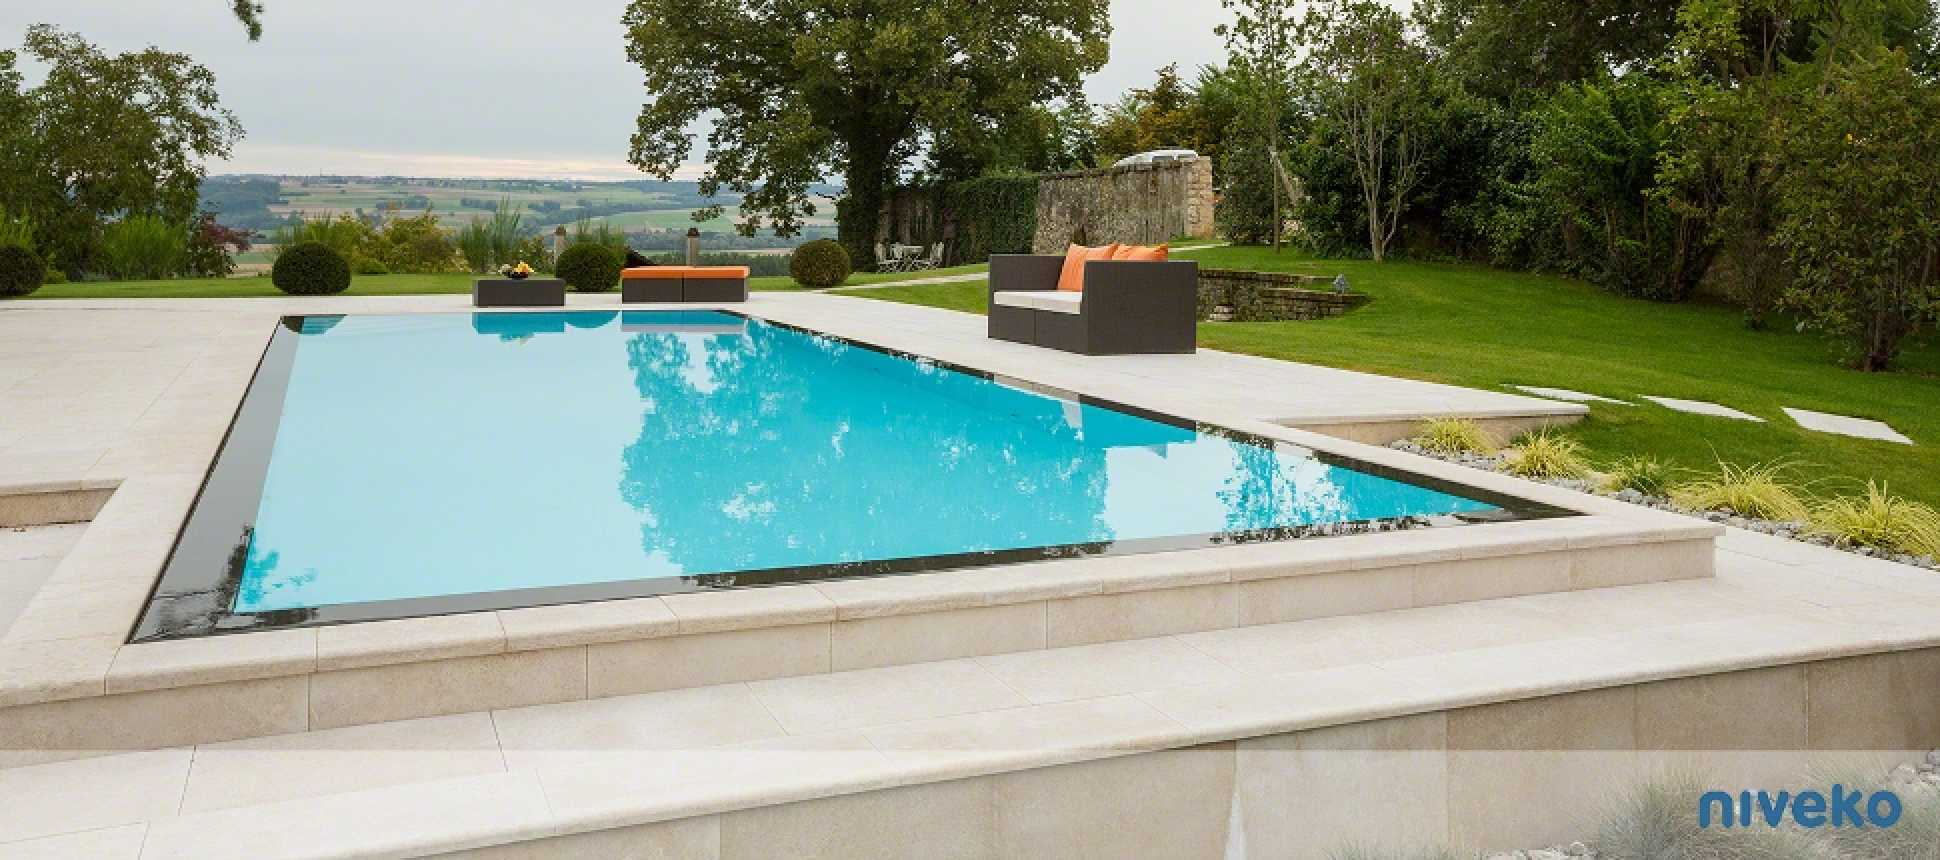 Polystonebecken Swimmingpool Niveko